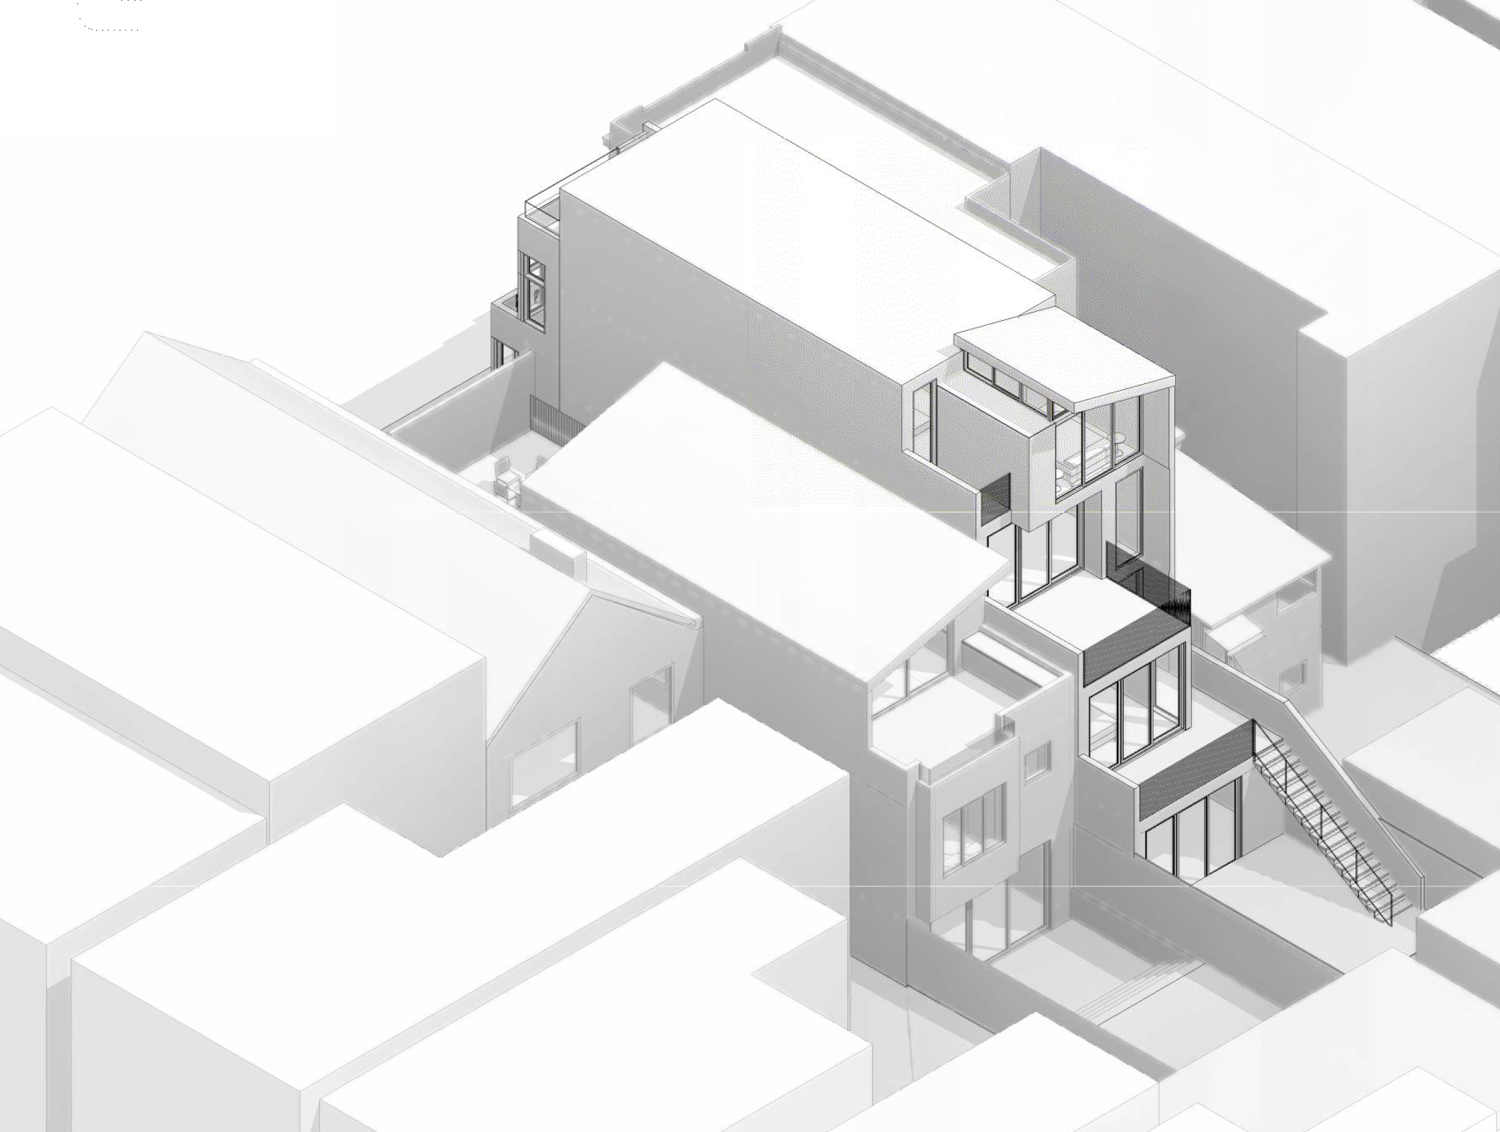 2967 23rd Street axonometric drawing, design by Winder Gibson Architects